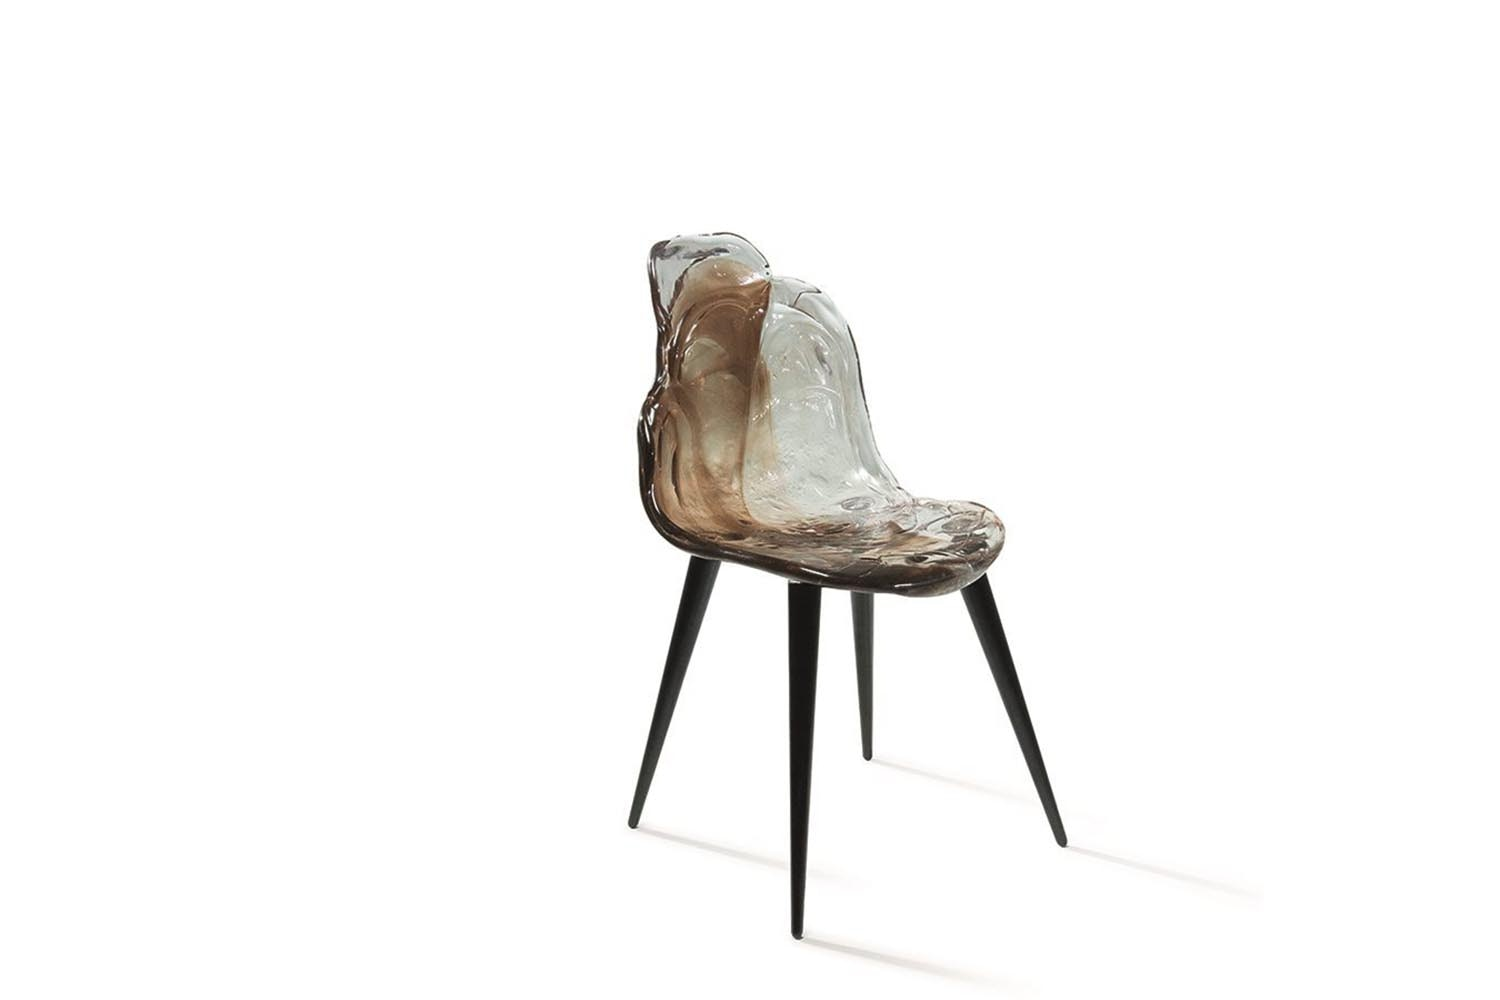 Gilda B. Chair by Jacopo Foggini for Edra